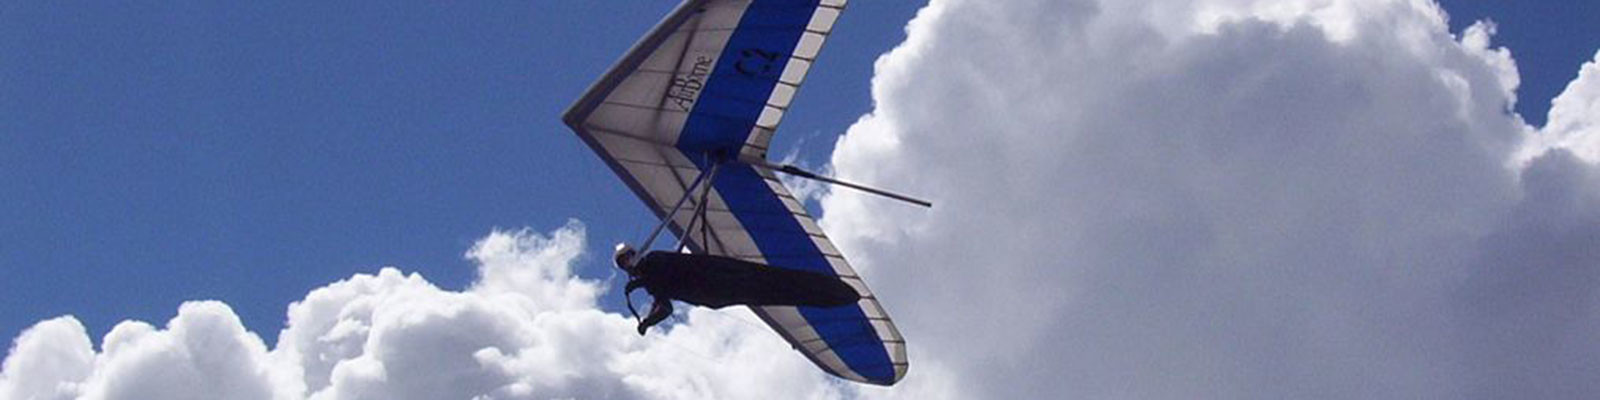 Paragliding and Hang Gliding in Jasper